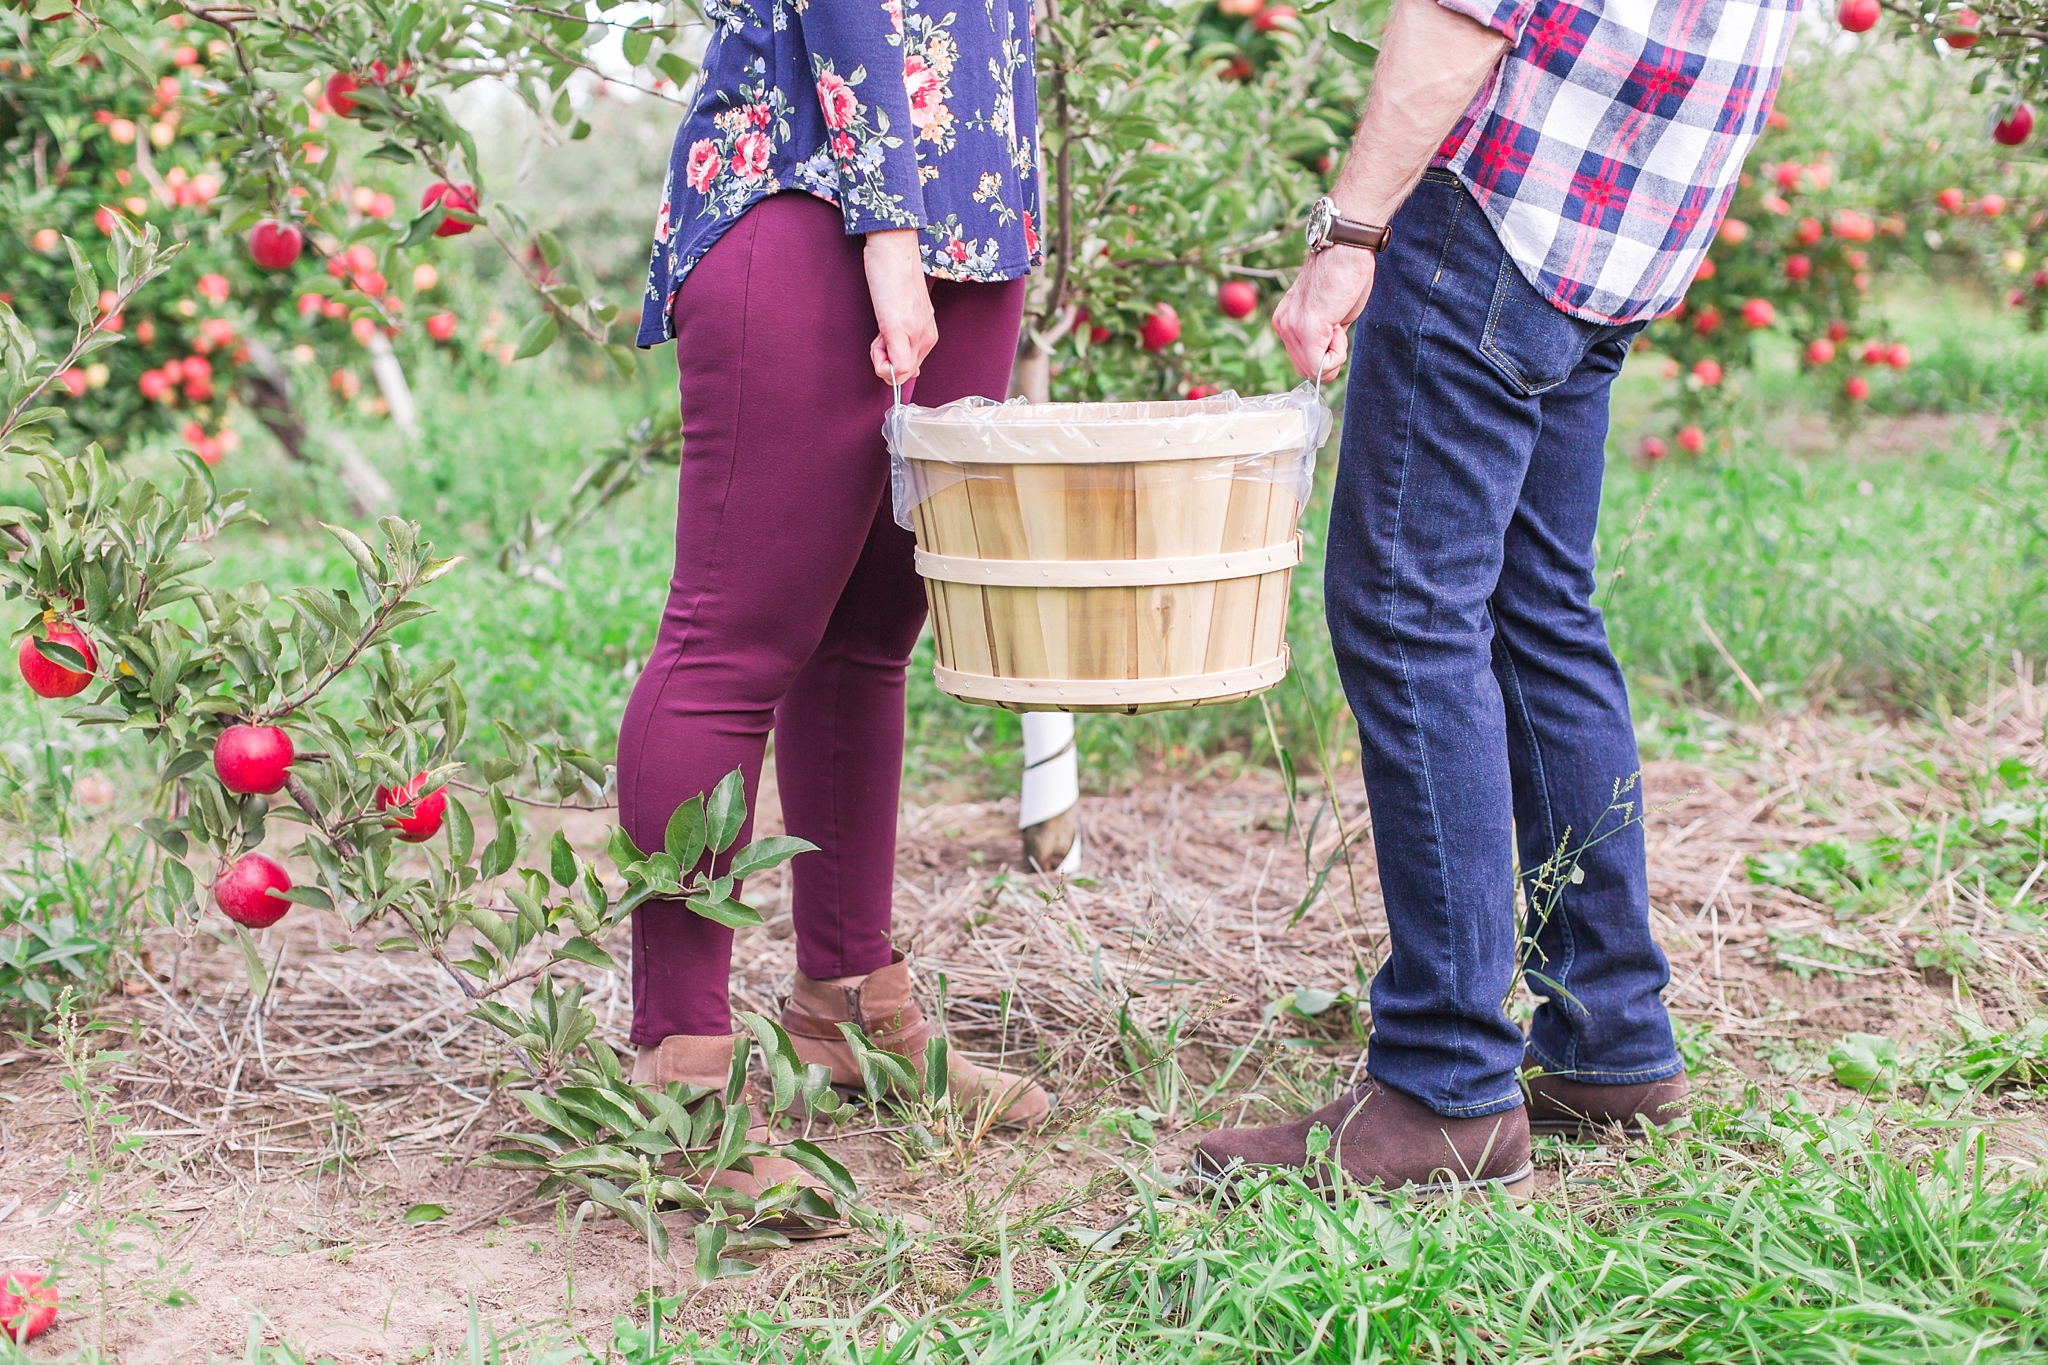 playful-fall-engagement-photos-at-hy's-cider-mill-ochard-in-bruce-township-michigan-by-courtney-carolyn-photography_0010.jpg